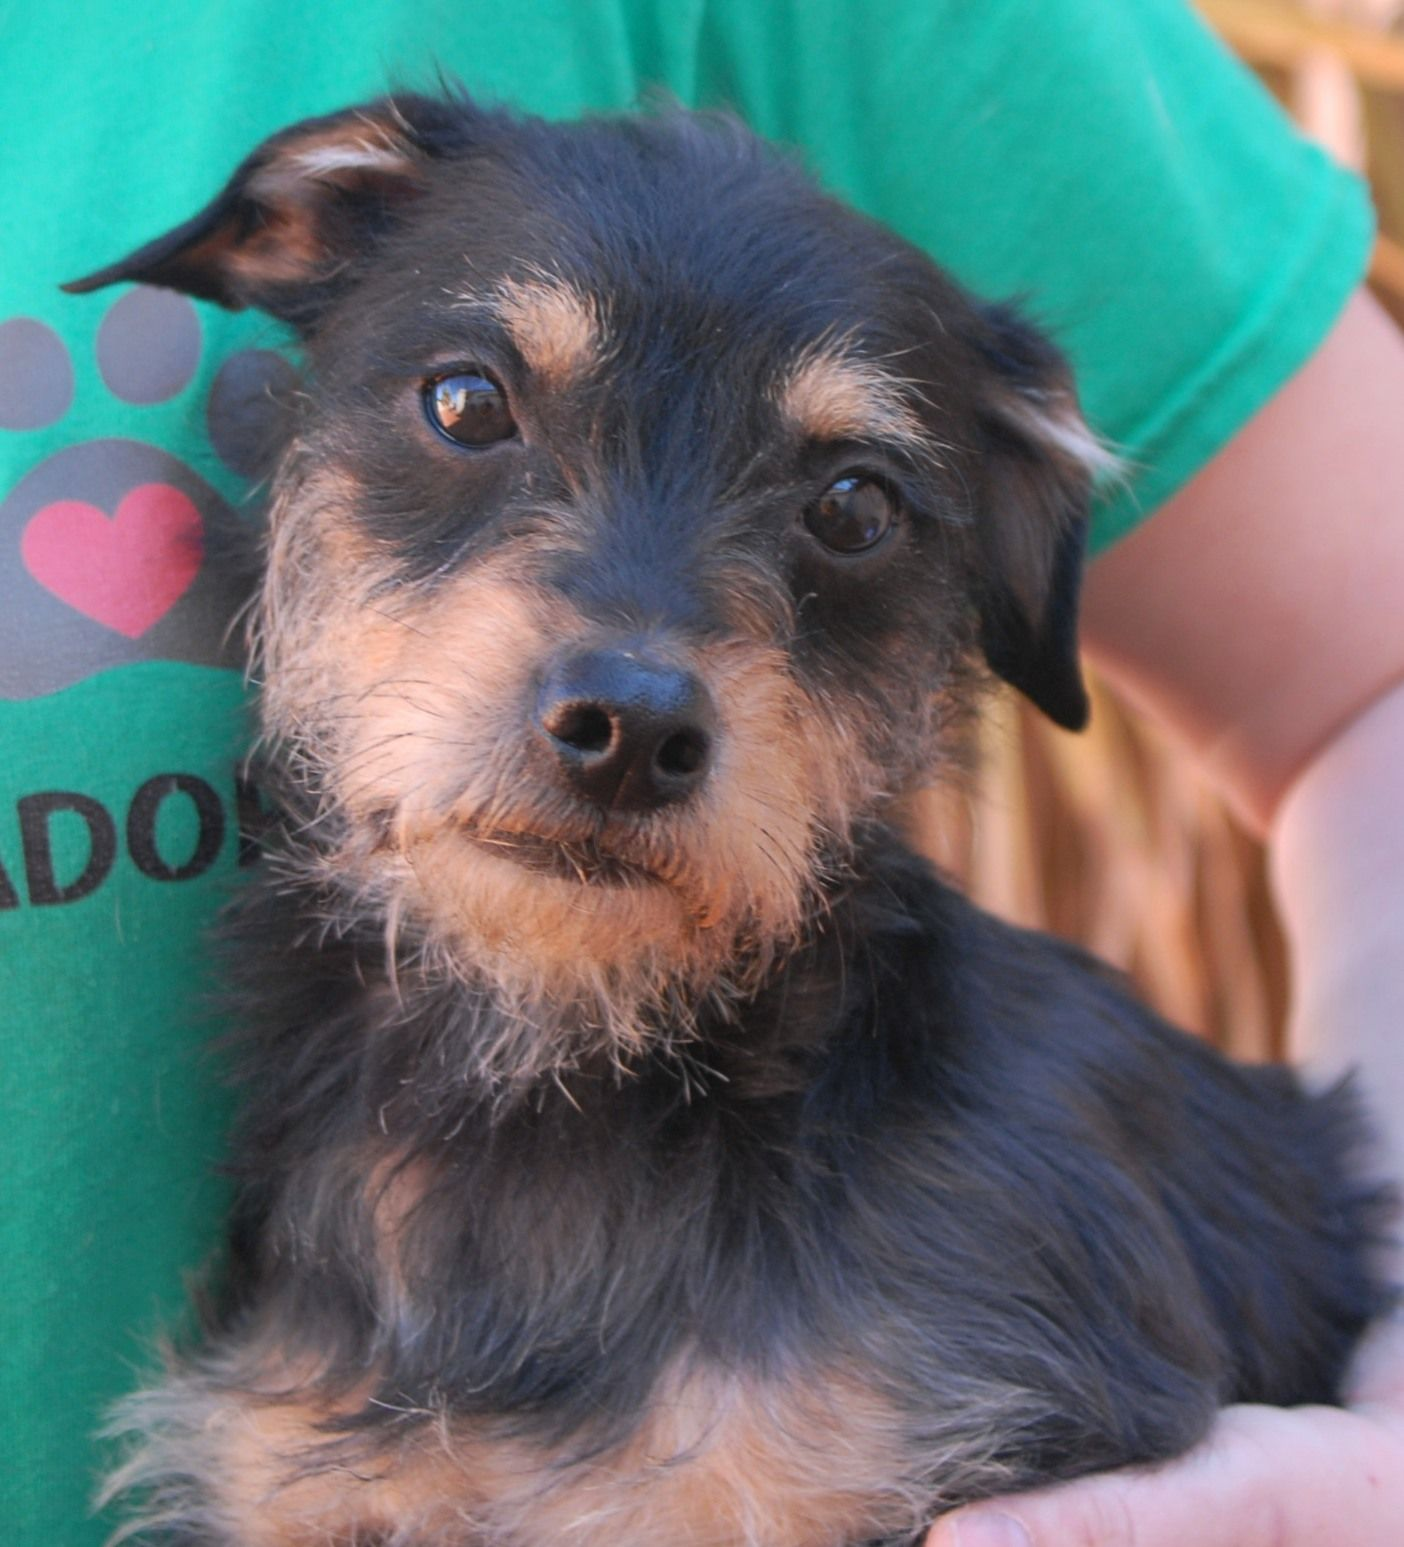 Kevin Is A Sensitive Youngster Who Cannot Comprehend Why Humans Have Hurt Him But While Terrified Of Strang Yorkshire Terrier Mixed Breed Puppies Dog Adoption